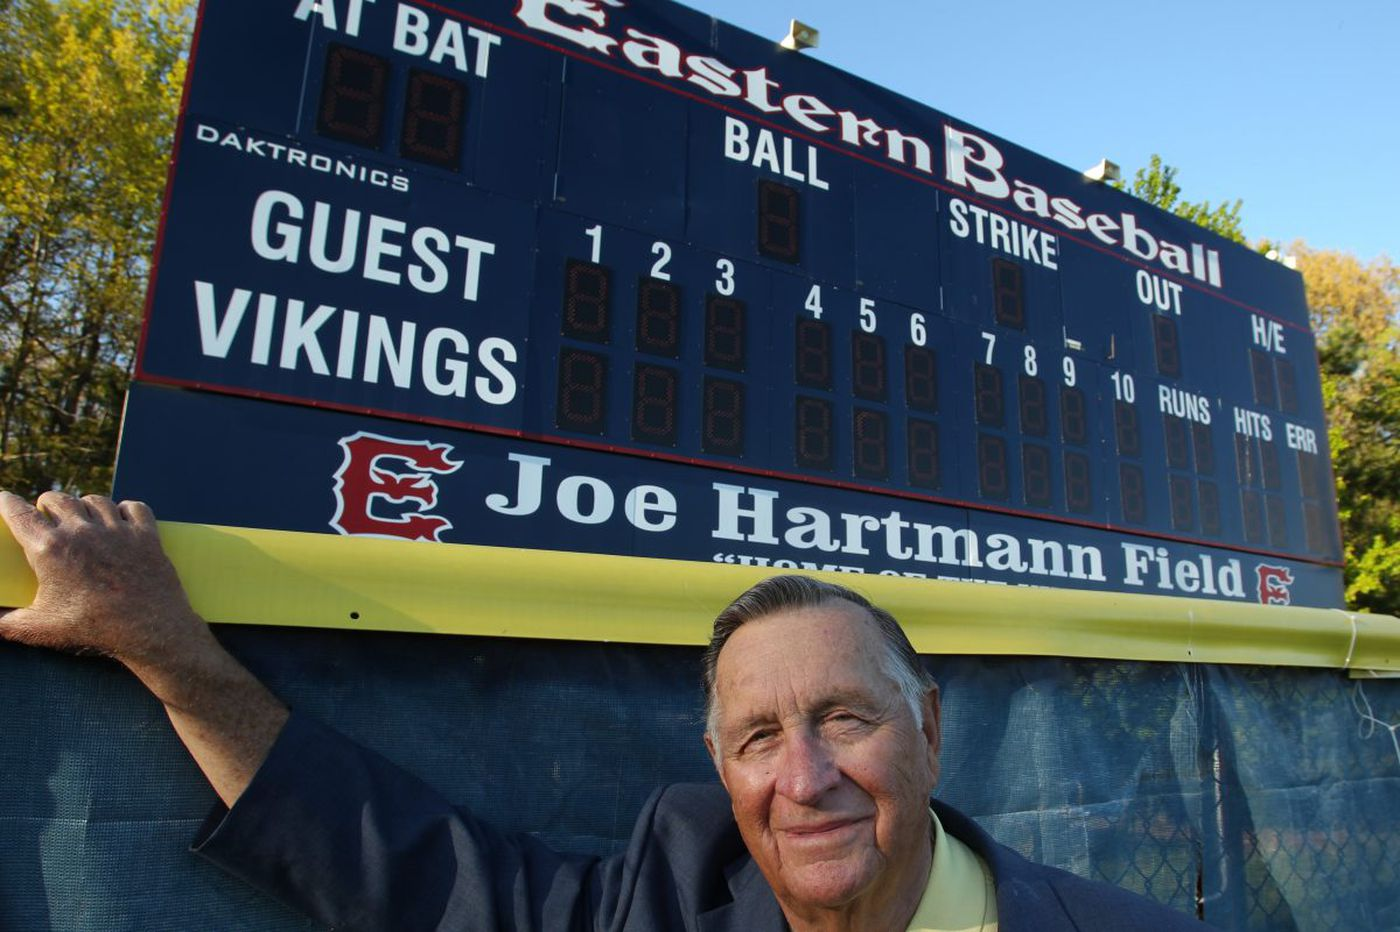 South Jersey's Joe Hartmann to be honored by Phila. Sports Writers Association